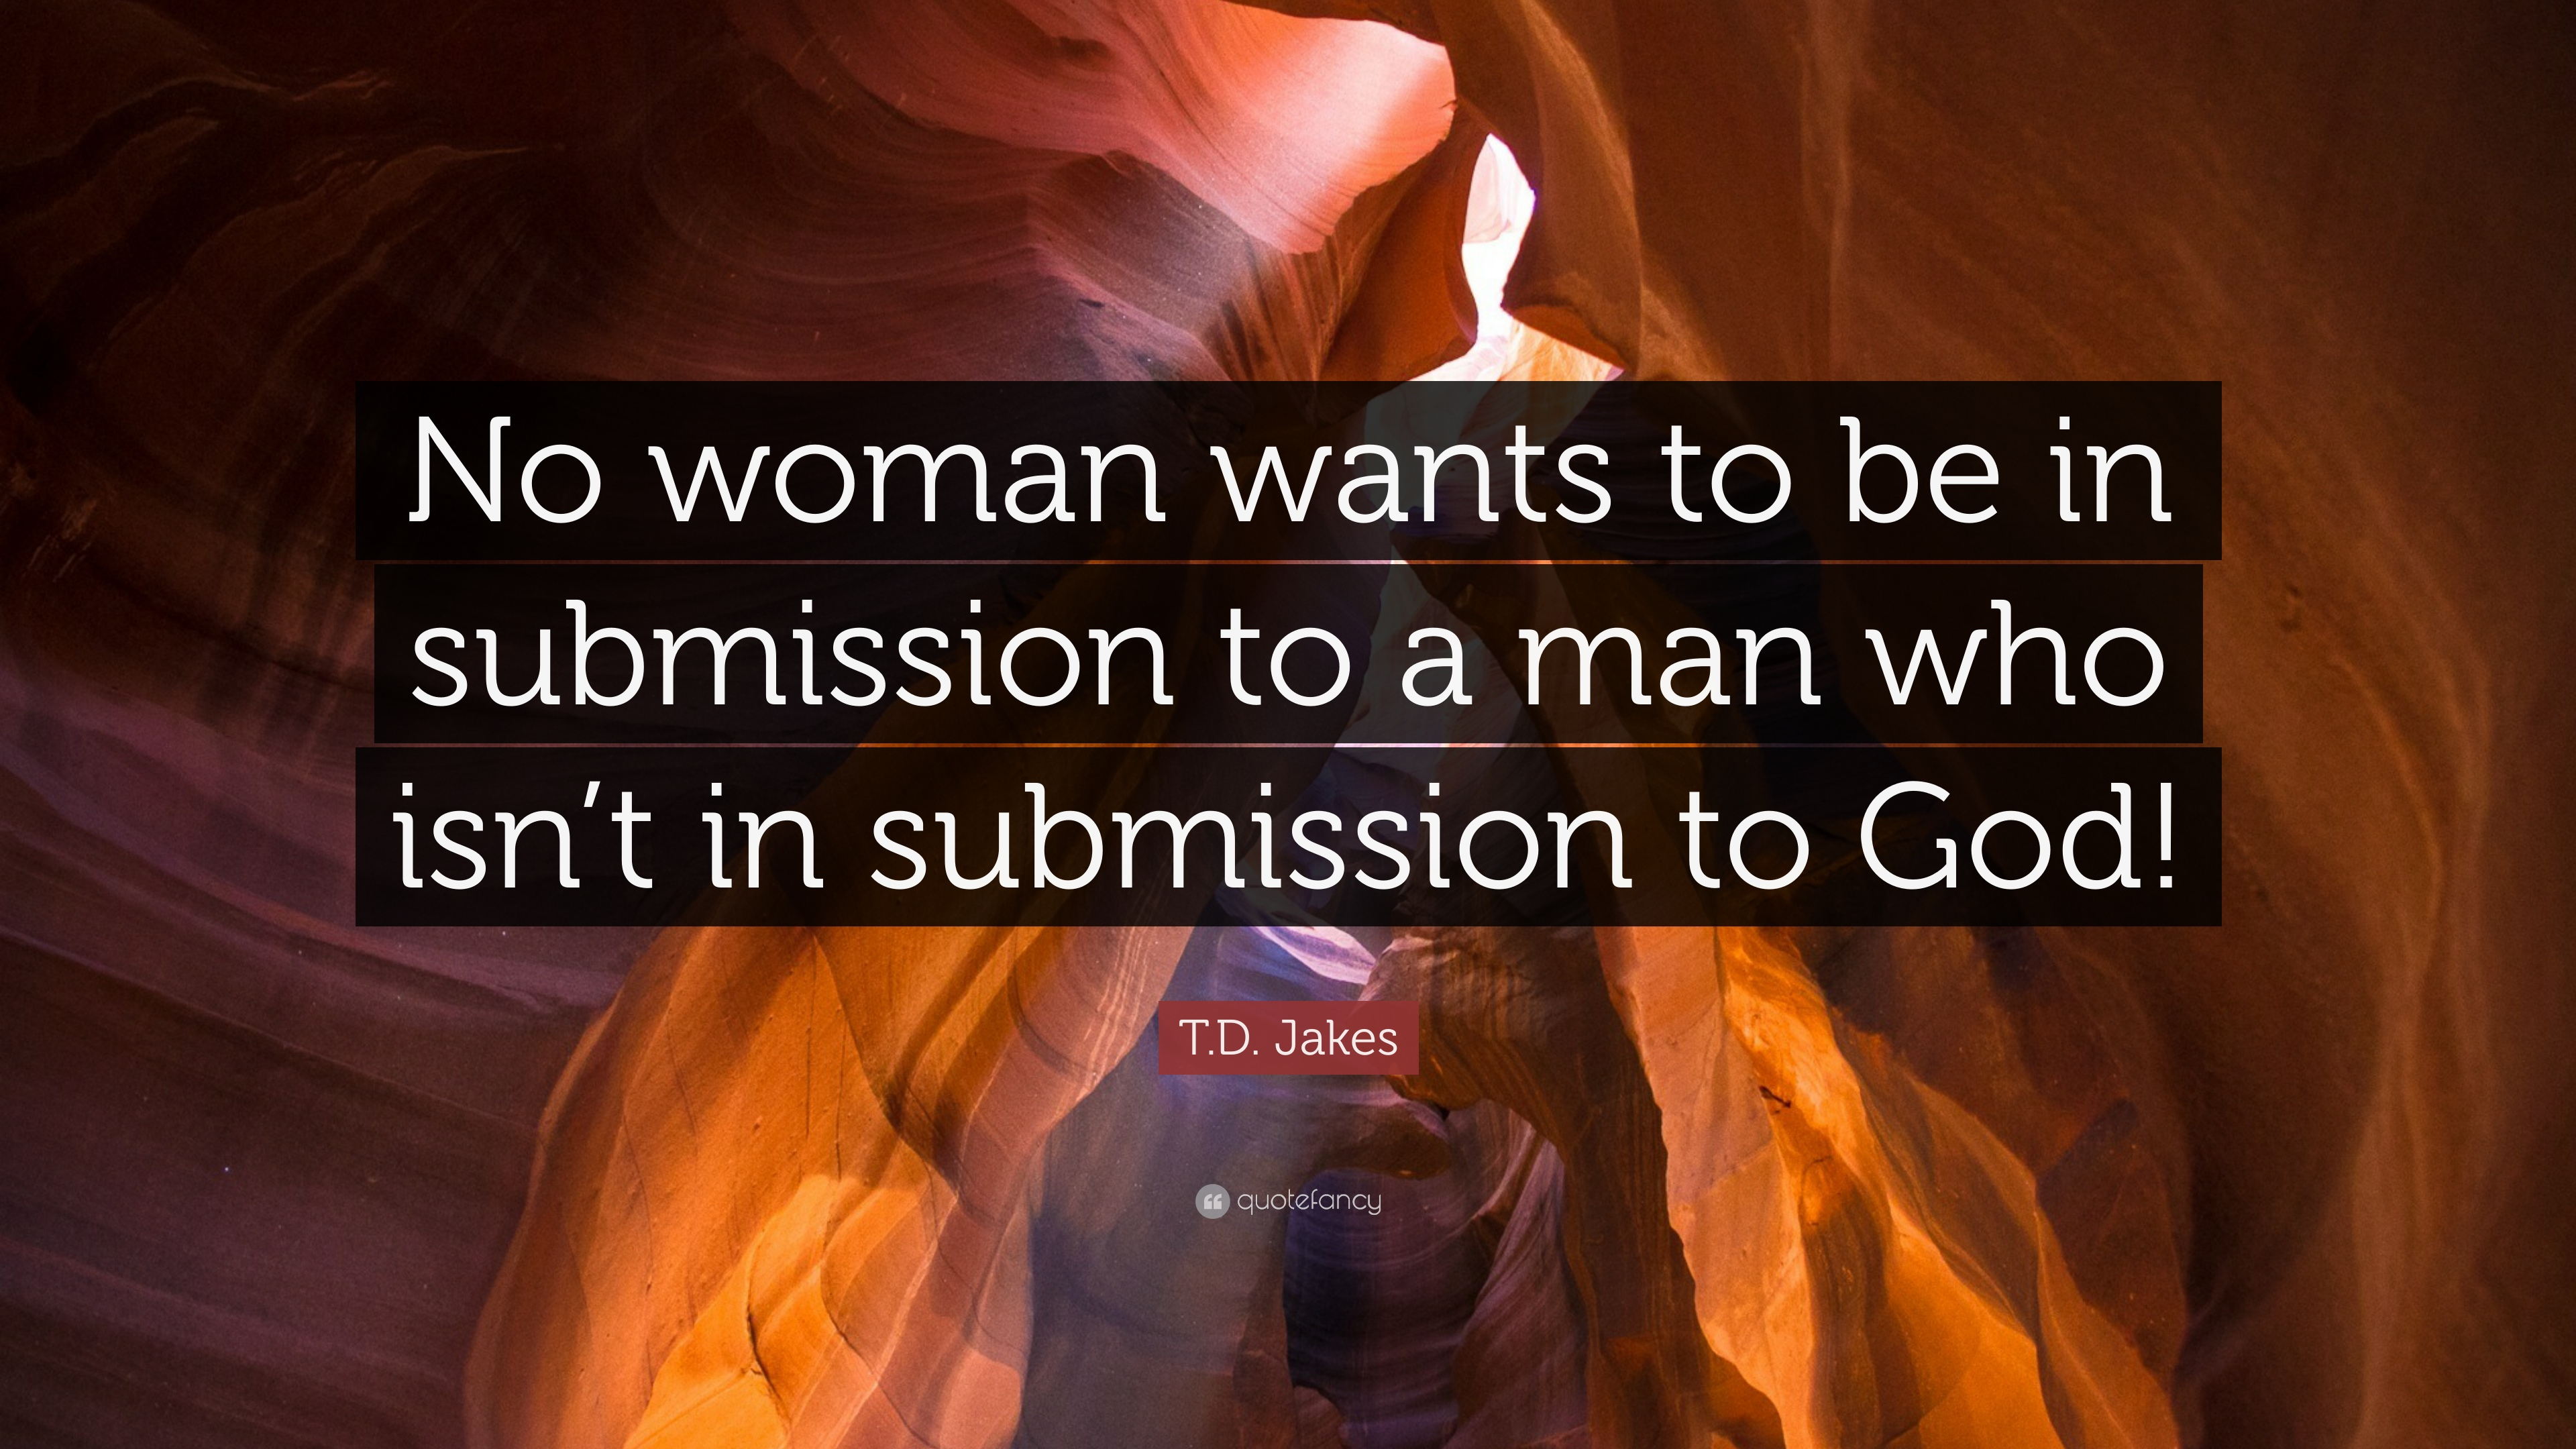 T.D. Jakes Quote: U201cNo Woman Wants To Be In Submission To A Man Who